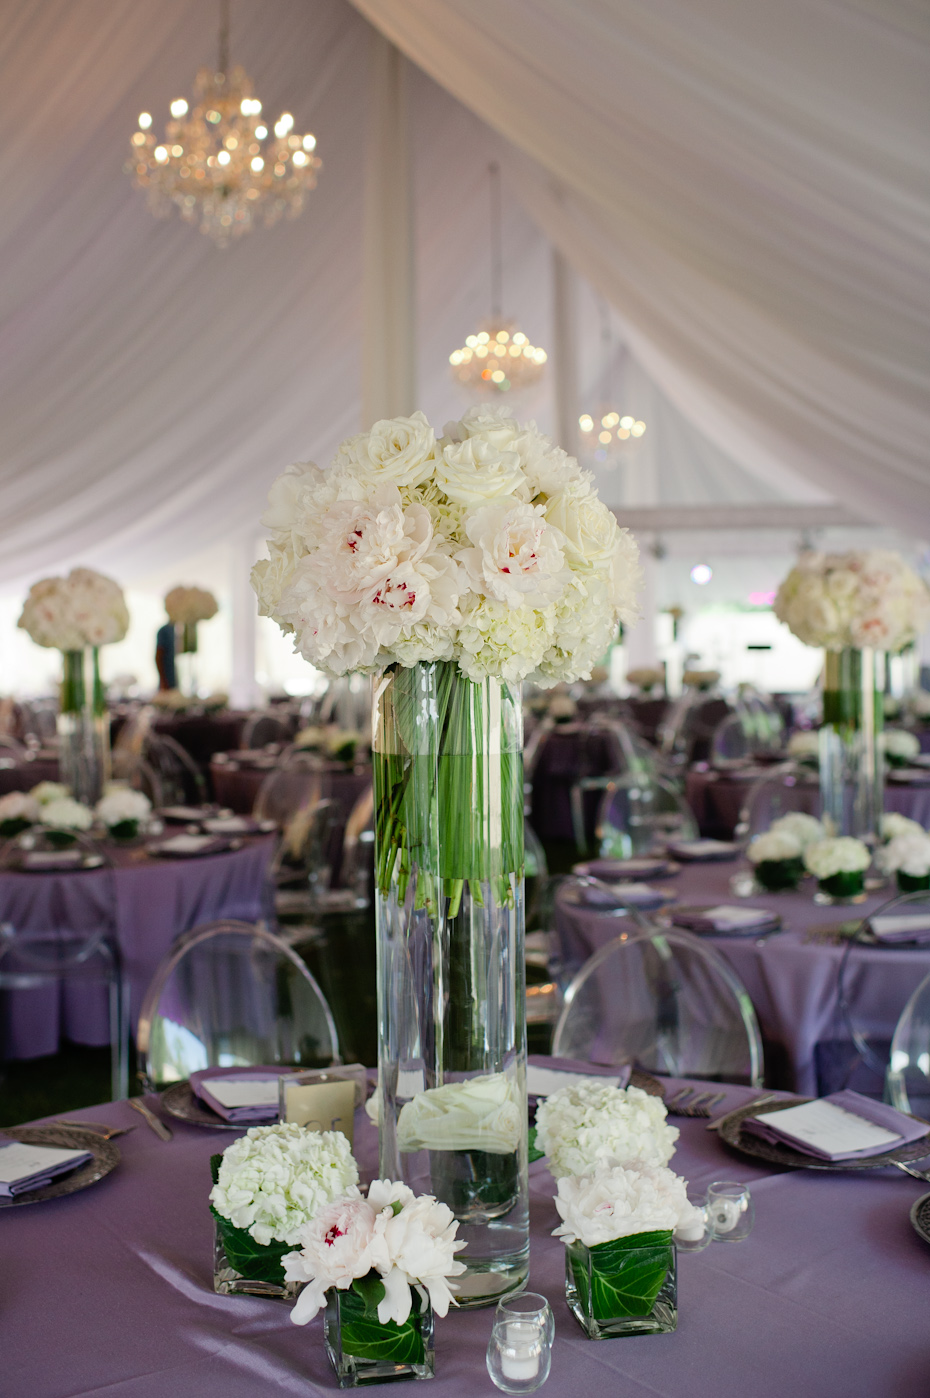 Peony Centerpieces at Wedding